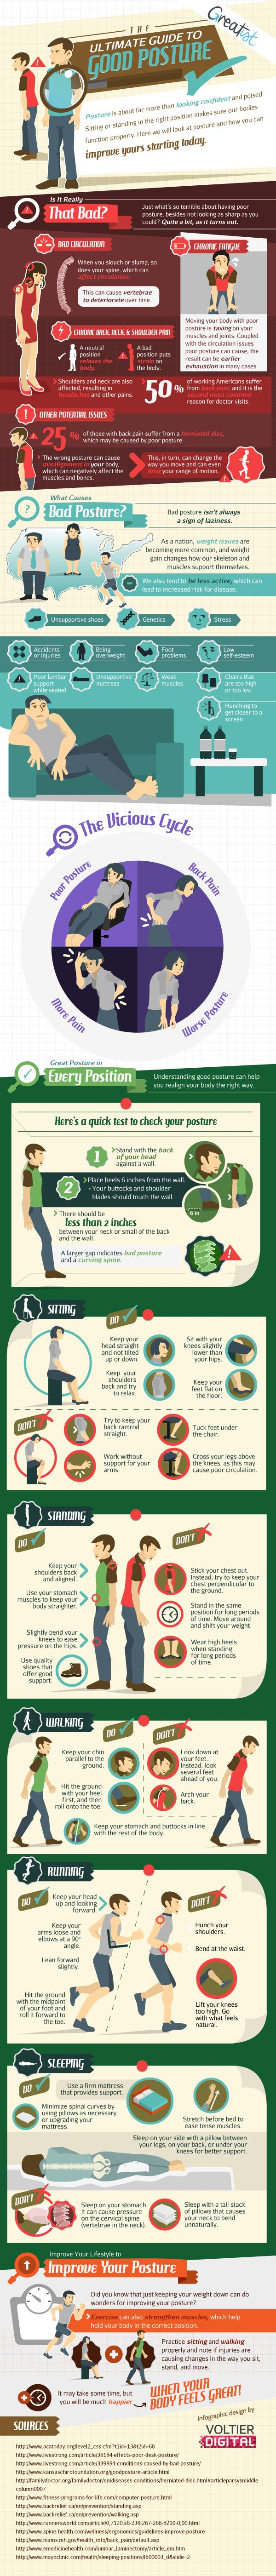 Posture is about more than looking confident. Sitting or standing correctly ensures our bodies function properly. Use this infographic to start improving your posture today!